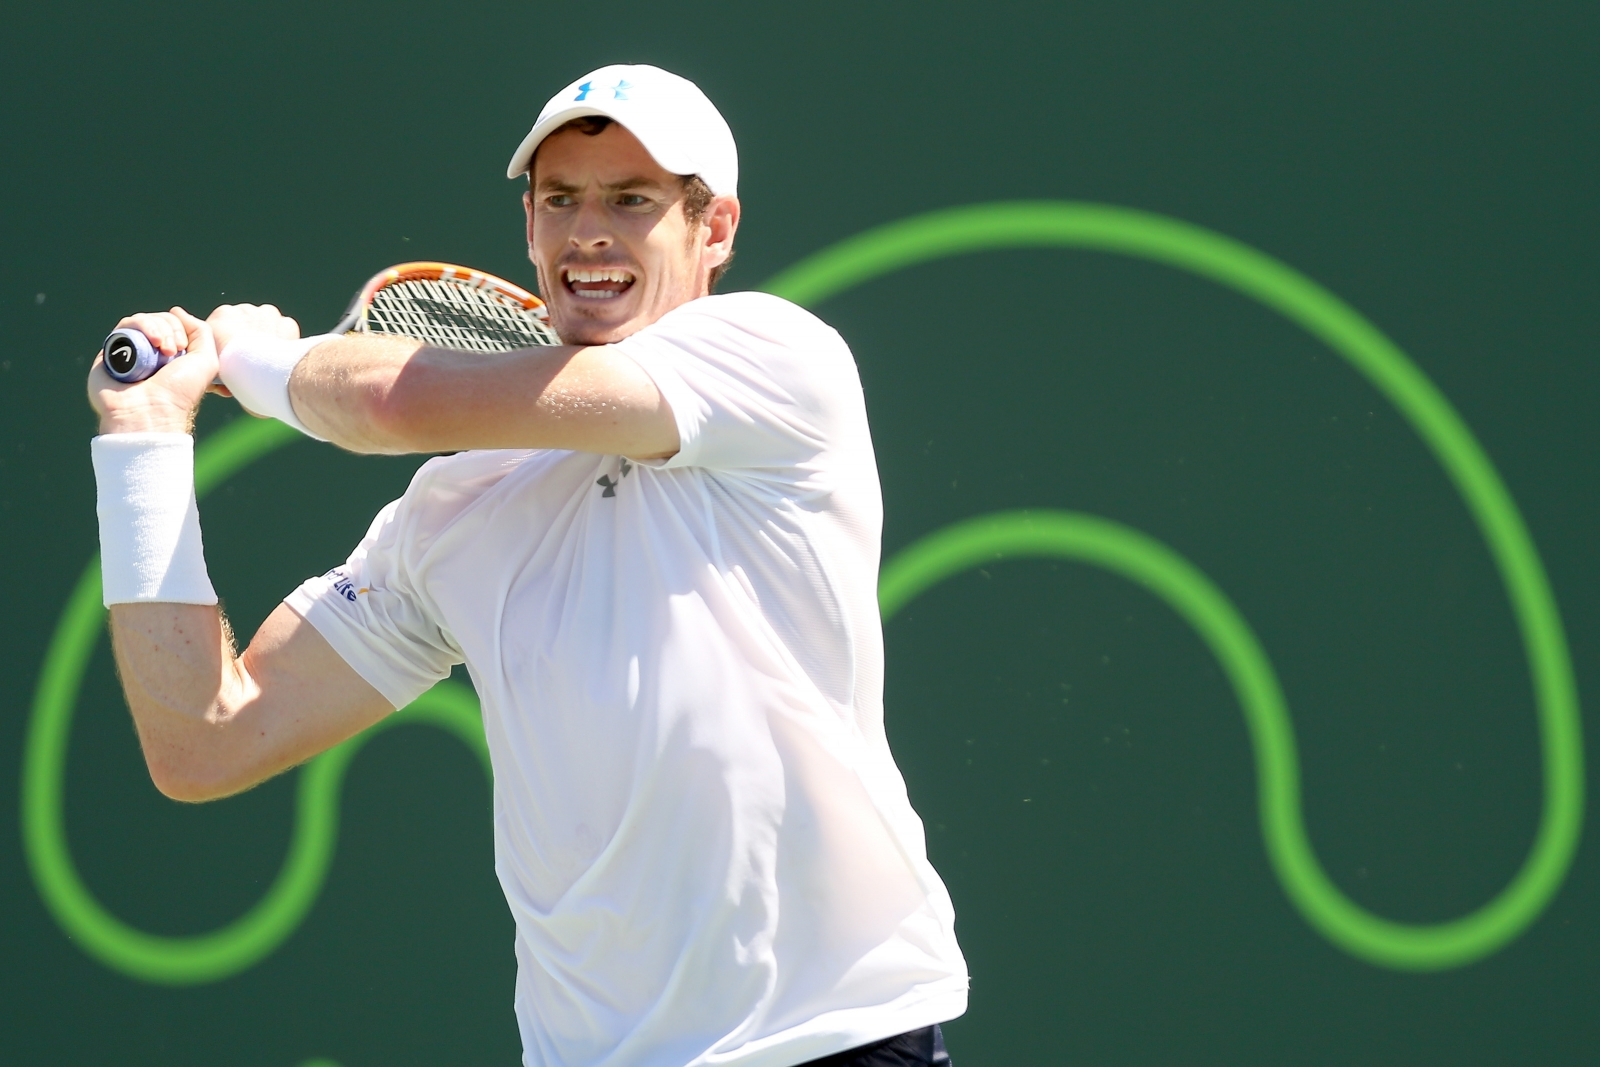 Murray will face djokovic in the final of the 2015 miami open getty